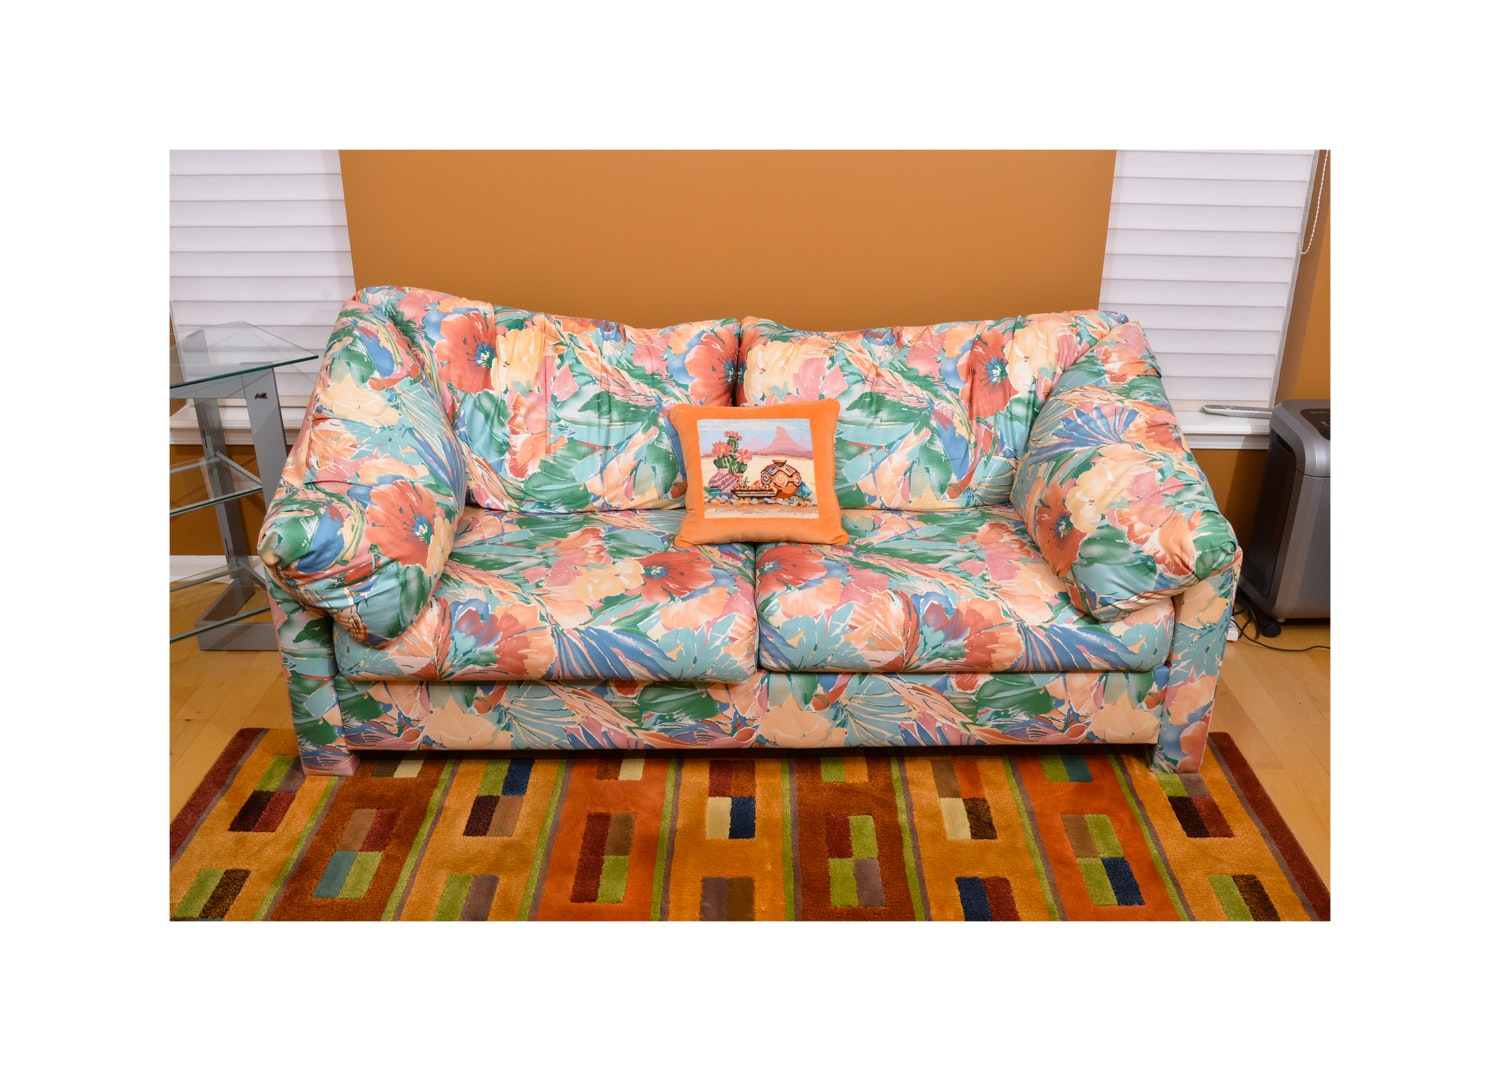 Vibrant Floral Upholstered Sleeper Sofa by H. Brian Convertible Sofas